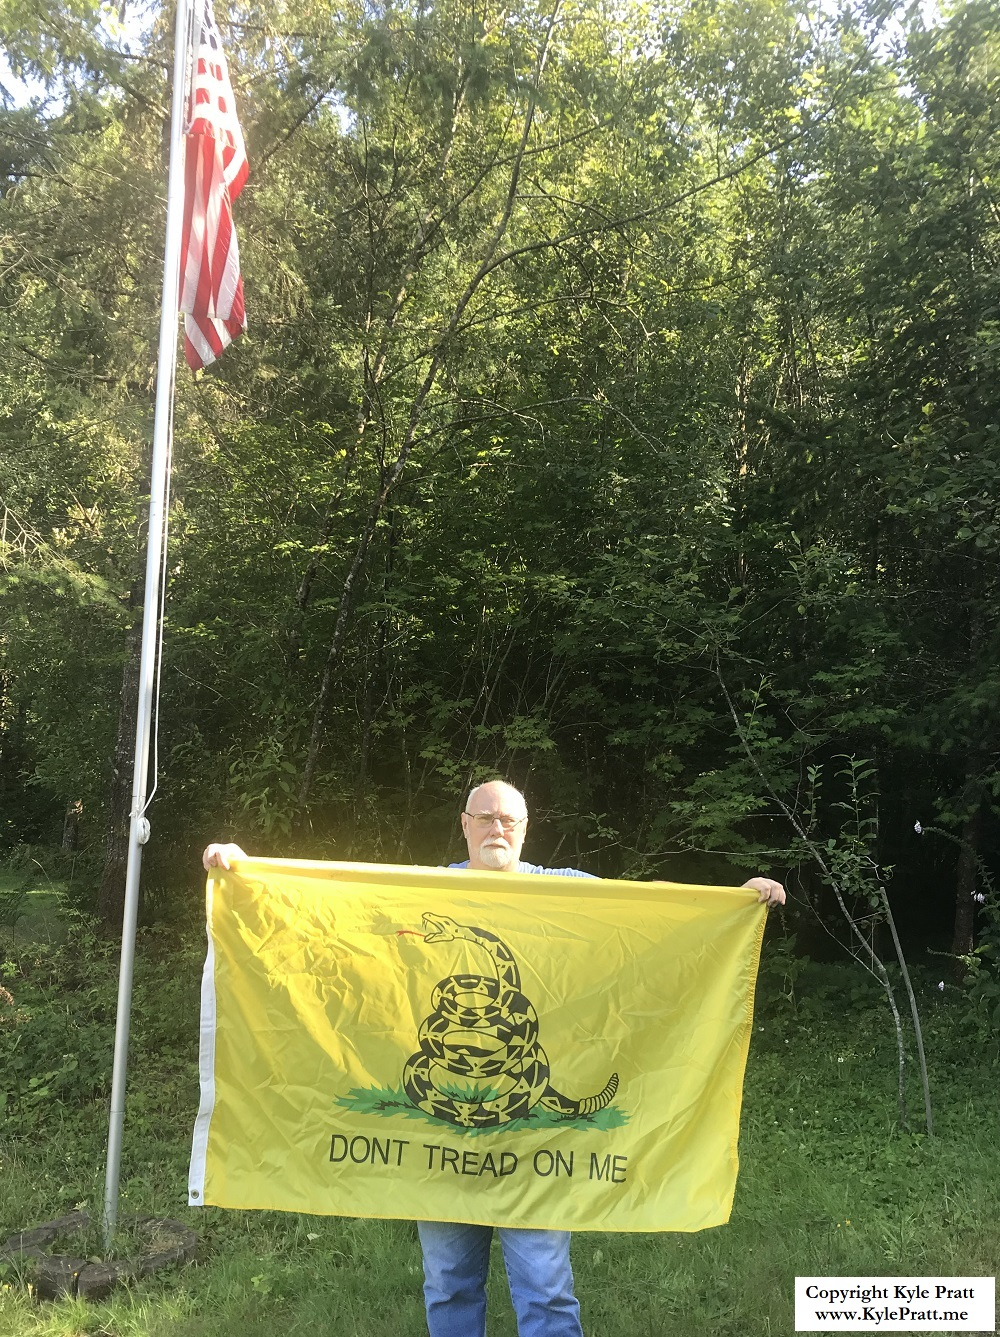 Kyle Pratt with his Gadsden Flag